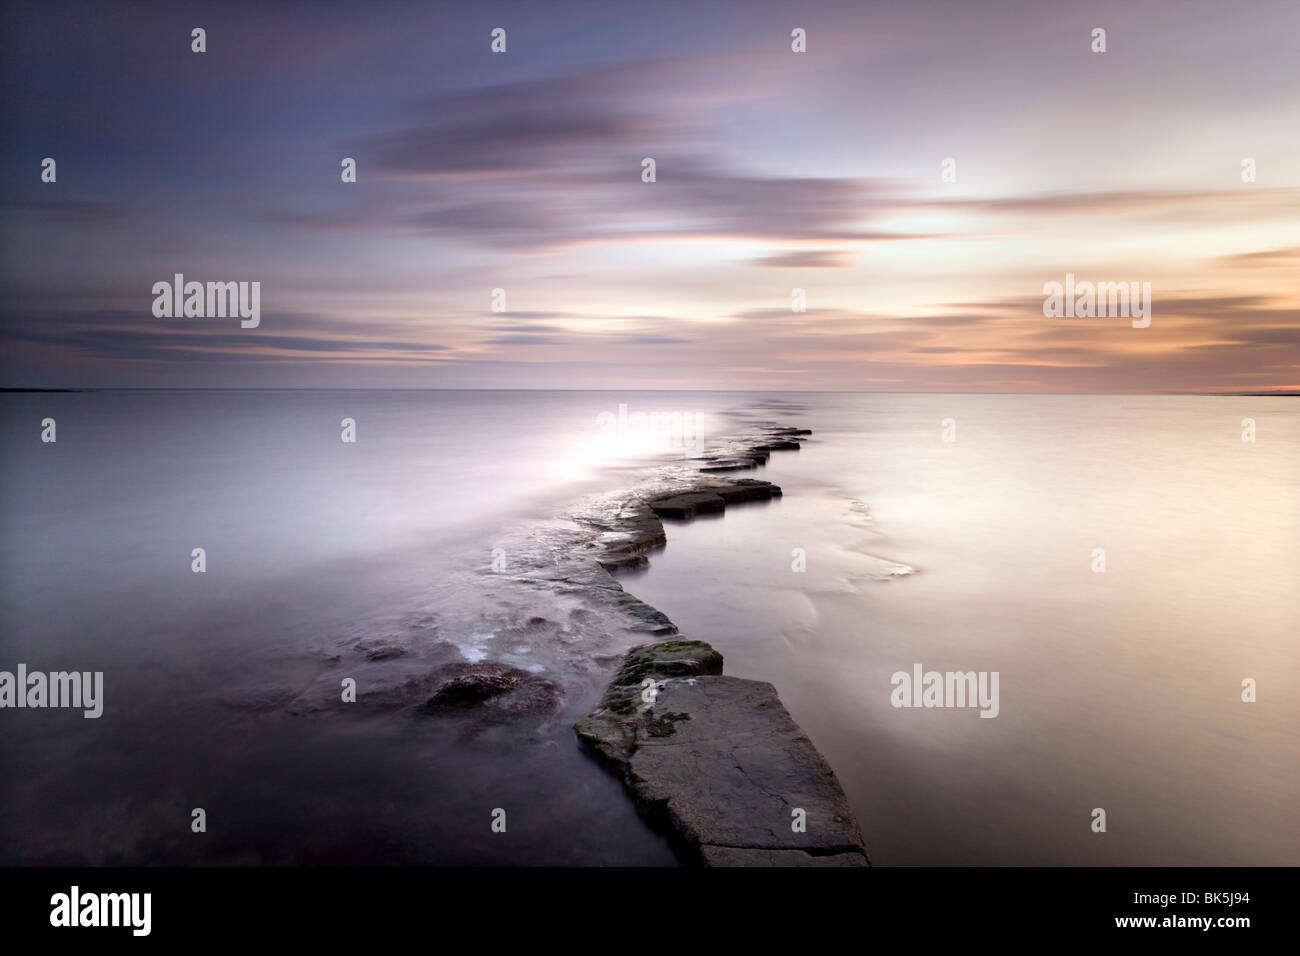 Kimmeridge Bay at dusk showing wave-cut platform known locally as The Flats, Perbeck District, Dorset, England, - Stock Image